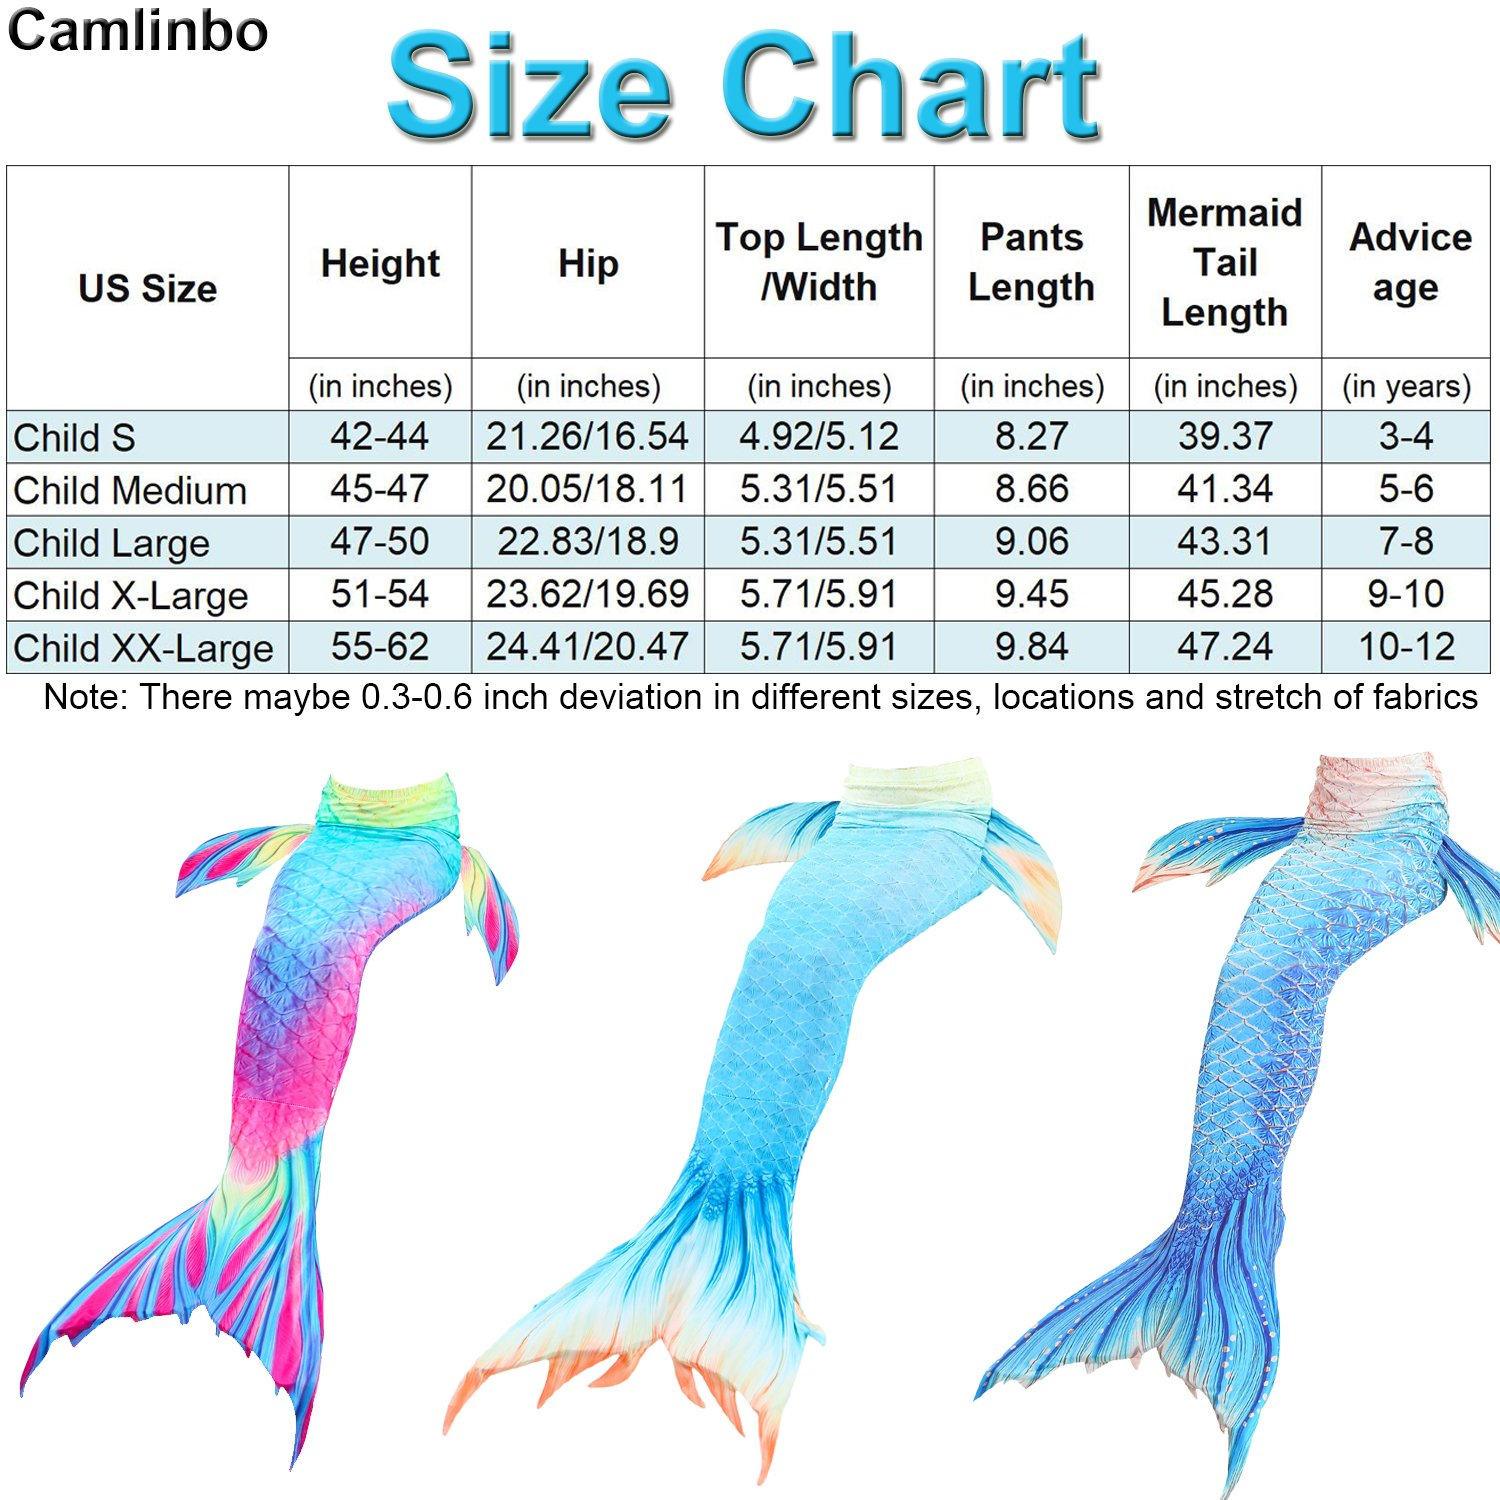 Camlinbo 3PCS Girls' Swimsuit Mermaid Tail for Swimming Tropical Bikini Set Support Monofin by Camlinbo (Image #2)